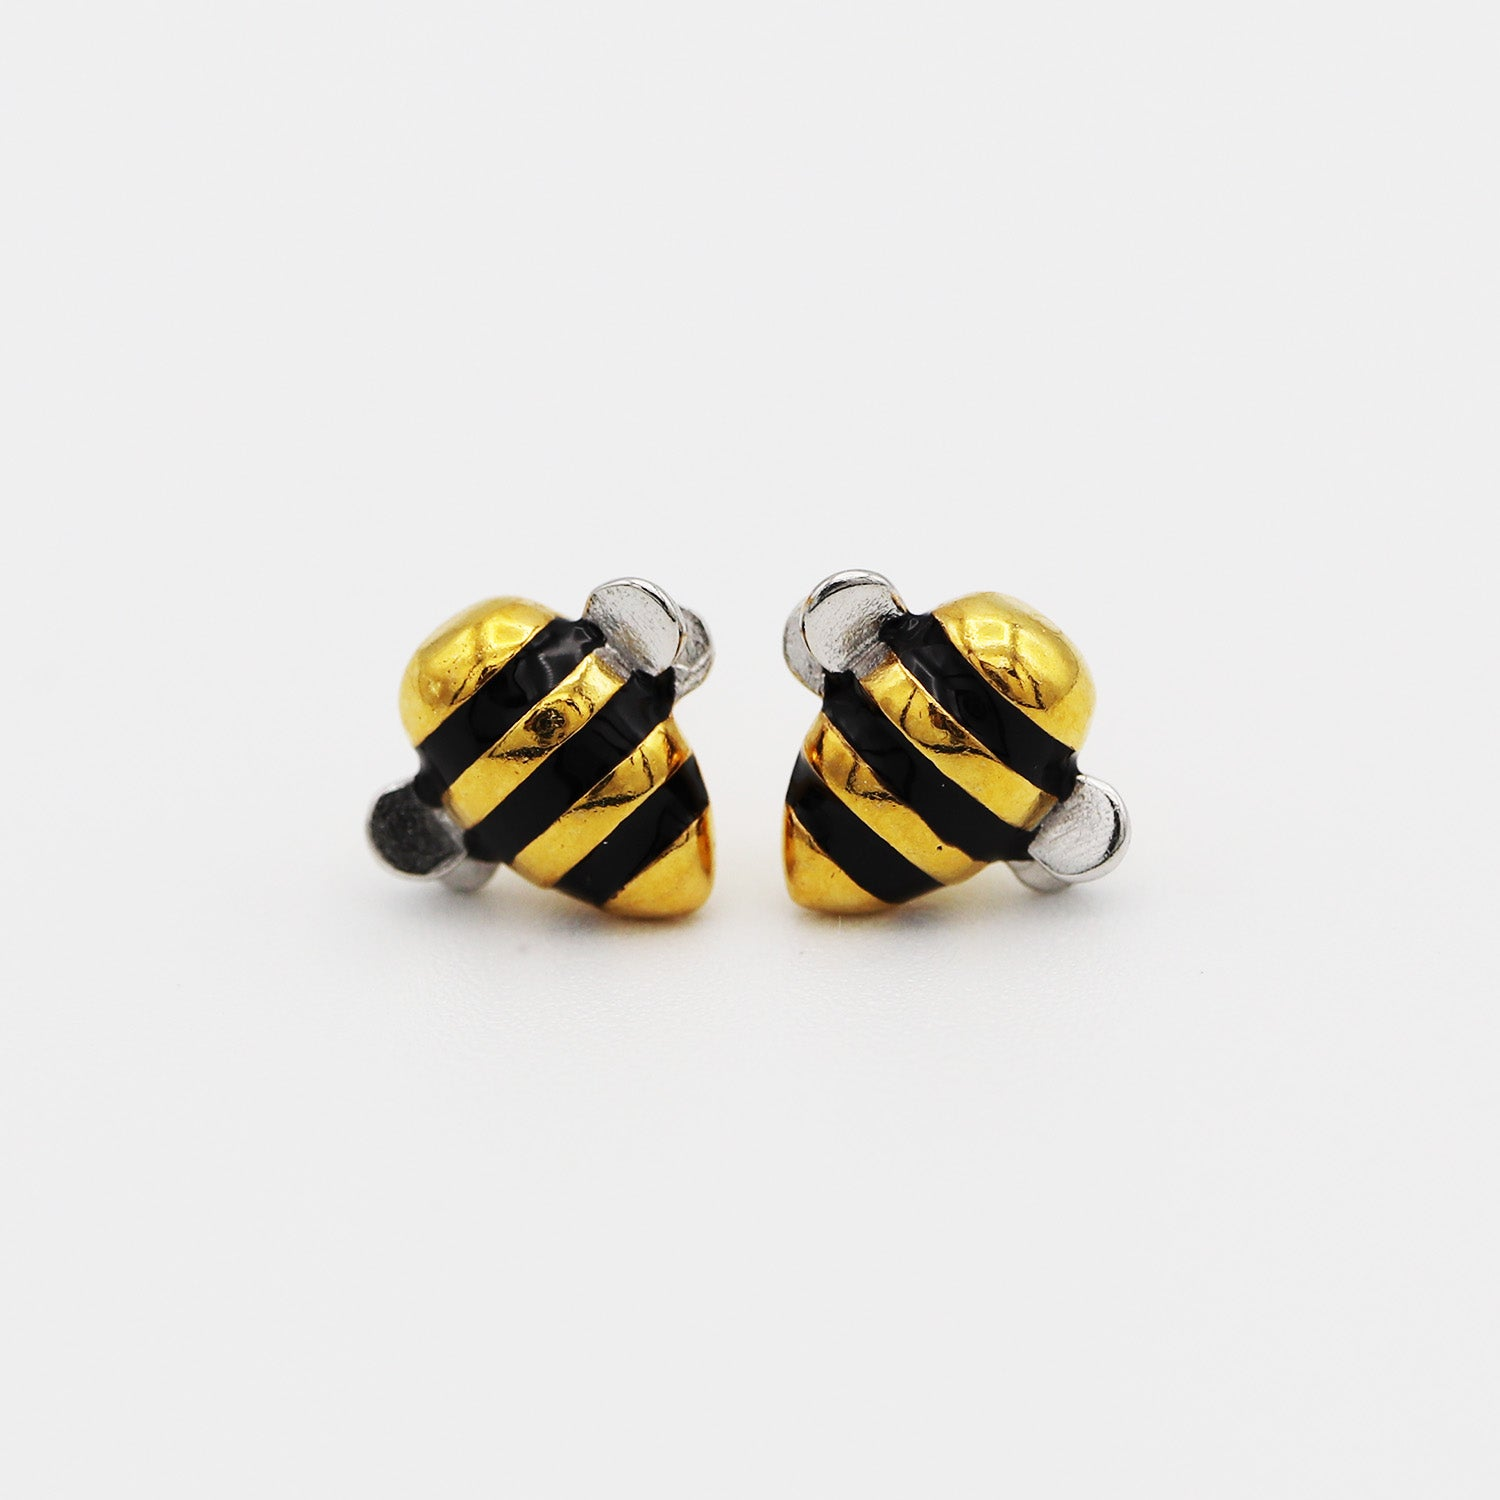 "Free Limited Edition ""Bee Inspired"" Silver & Gold Bumblebee Earrings (Free-Bee Friday)"